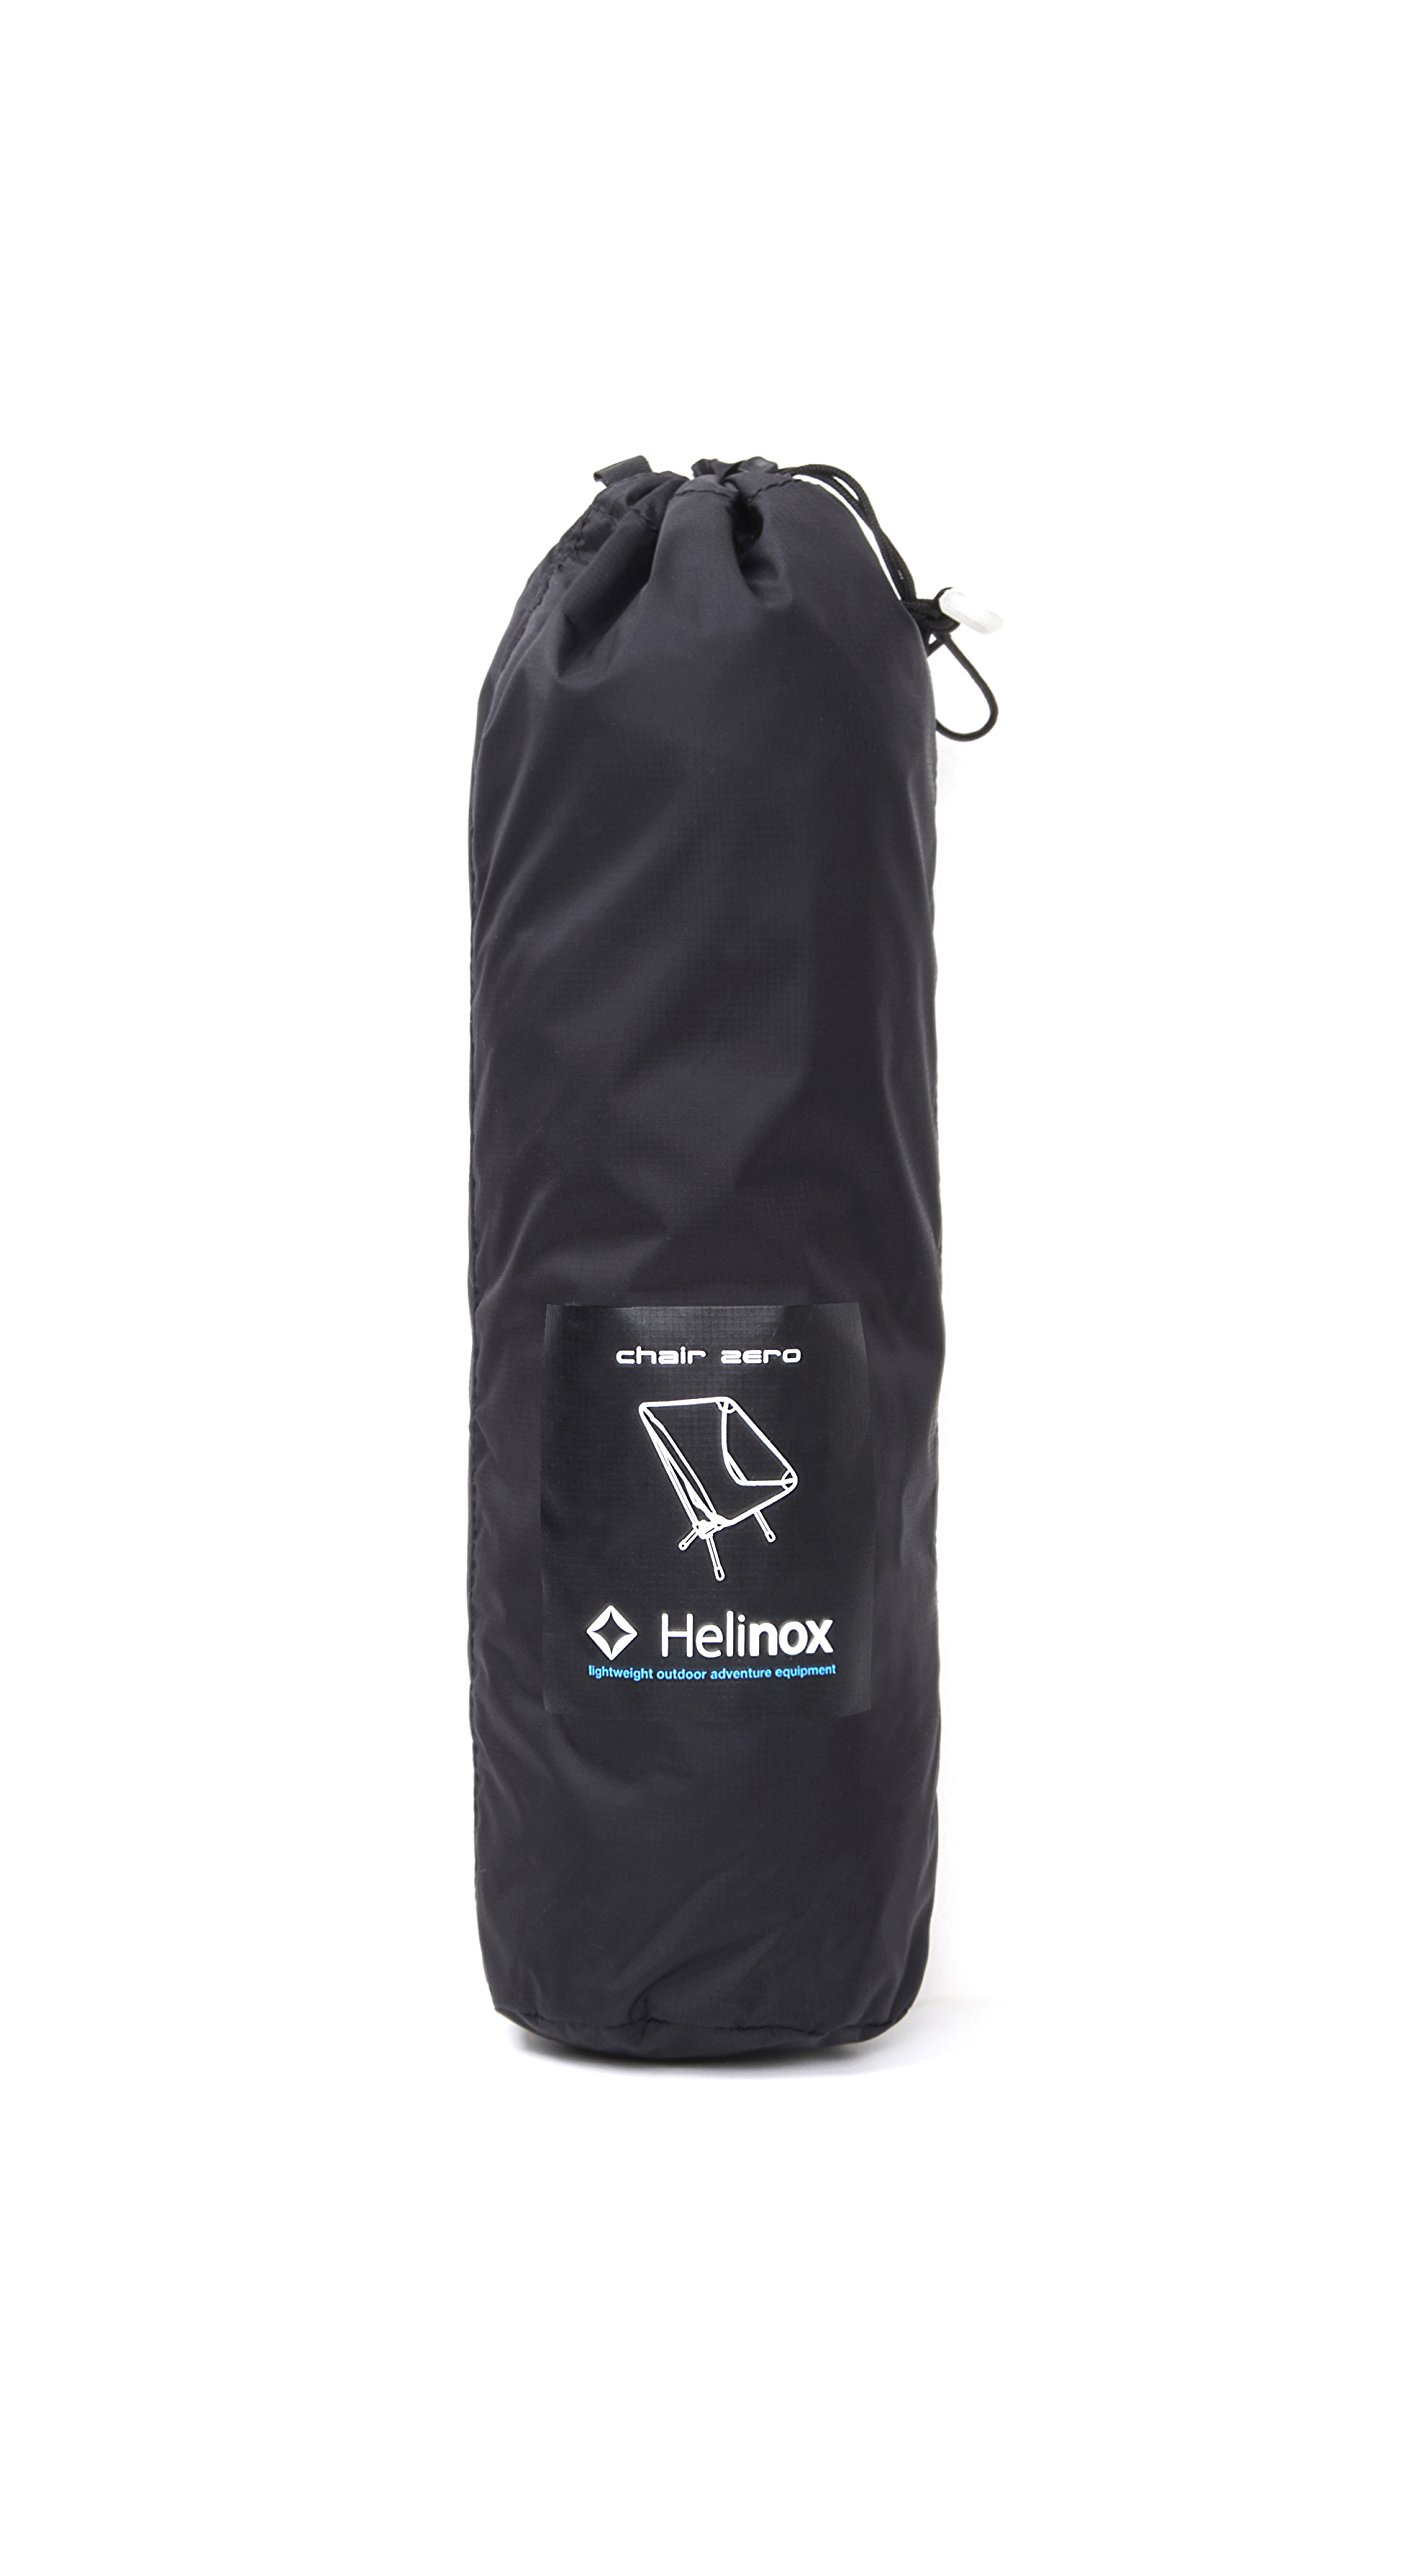 Helinox - Chair Zero Camping Chair, Black by Big Agnes (Image #7)